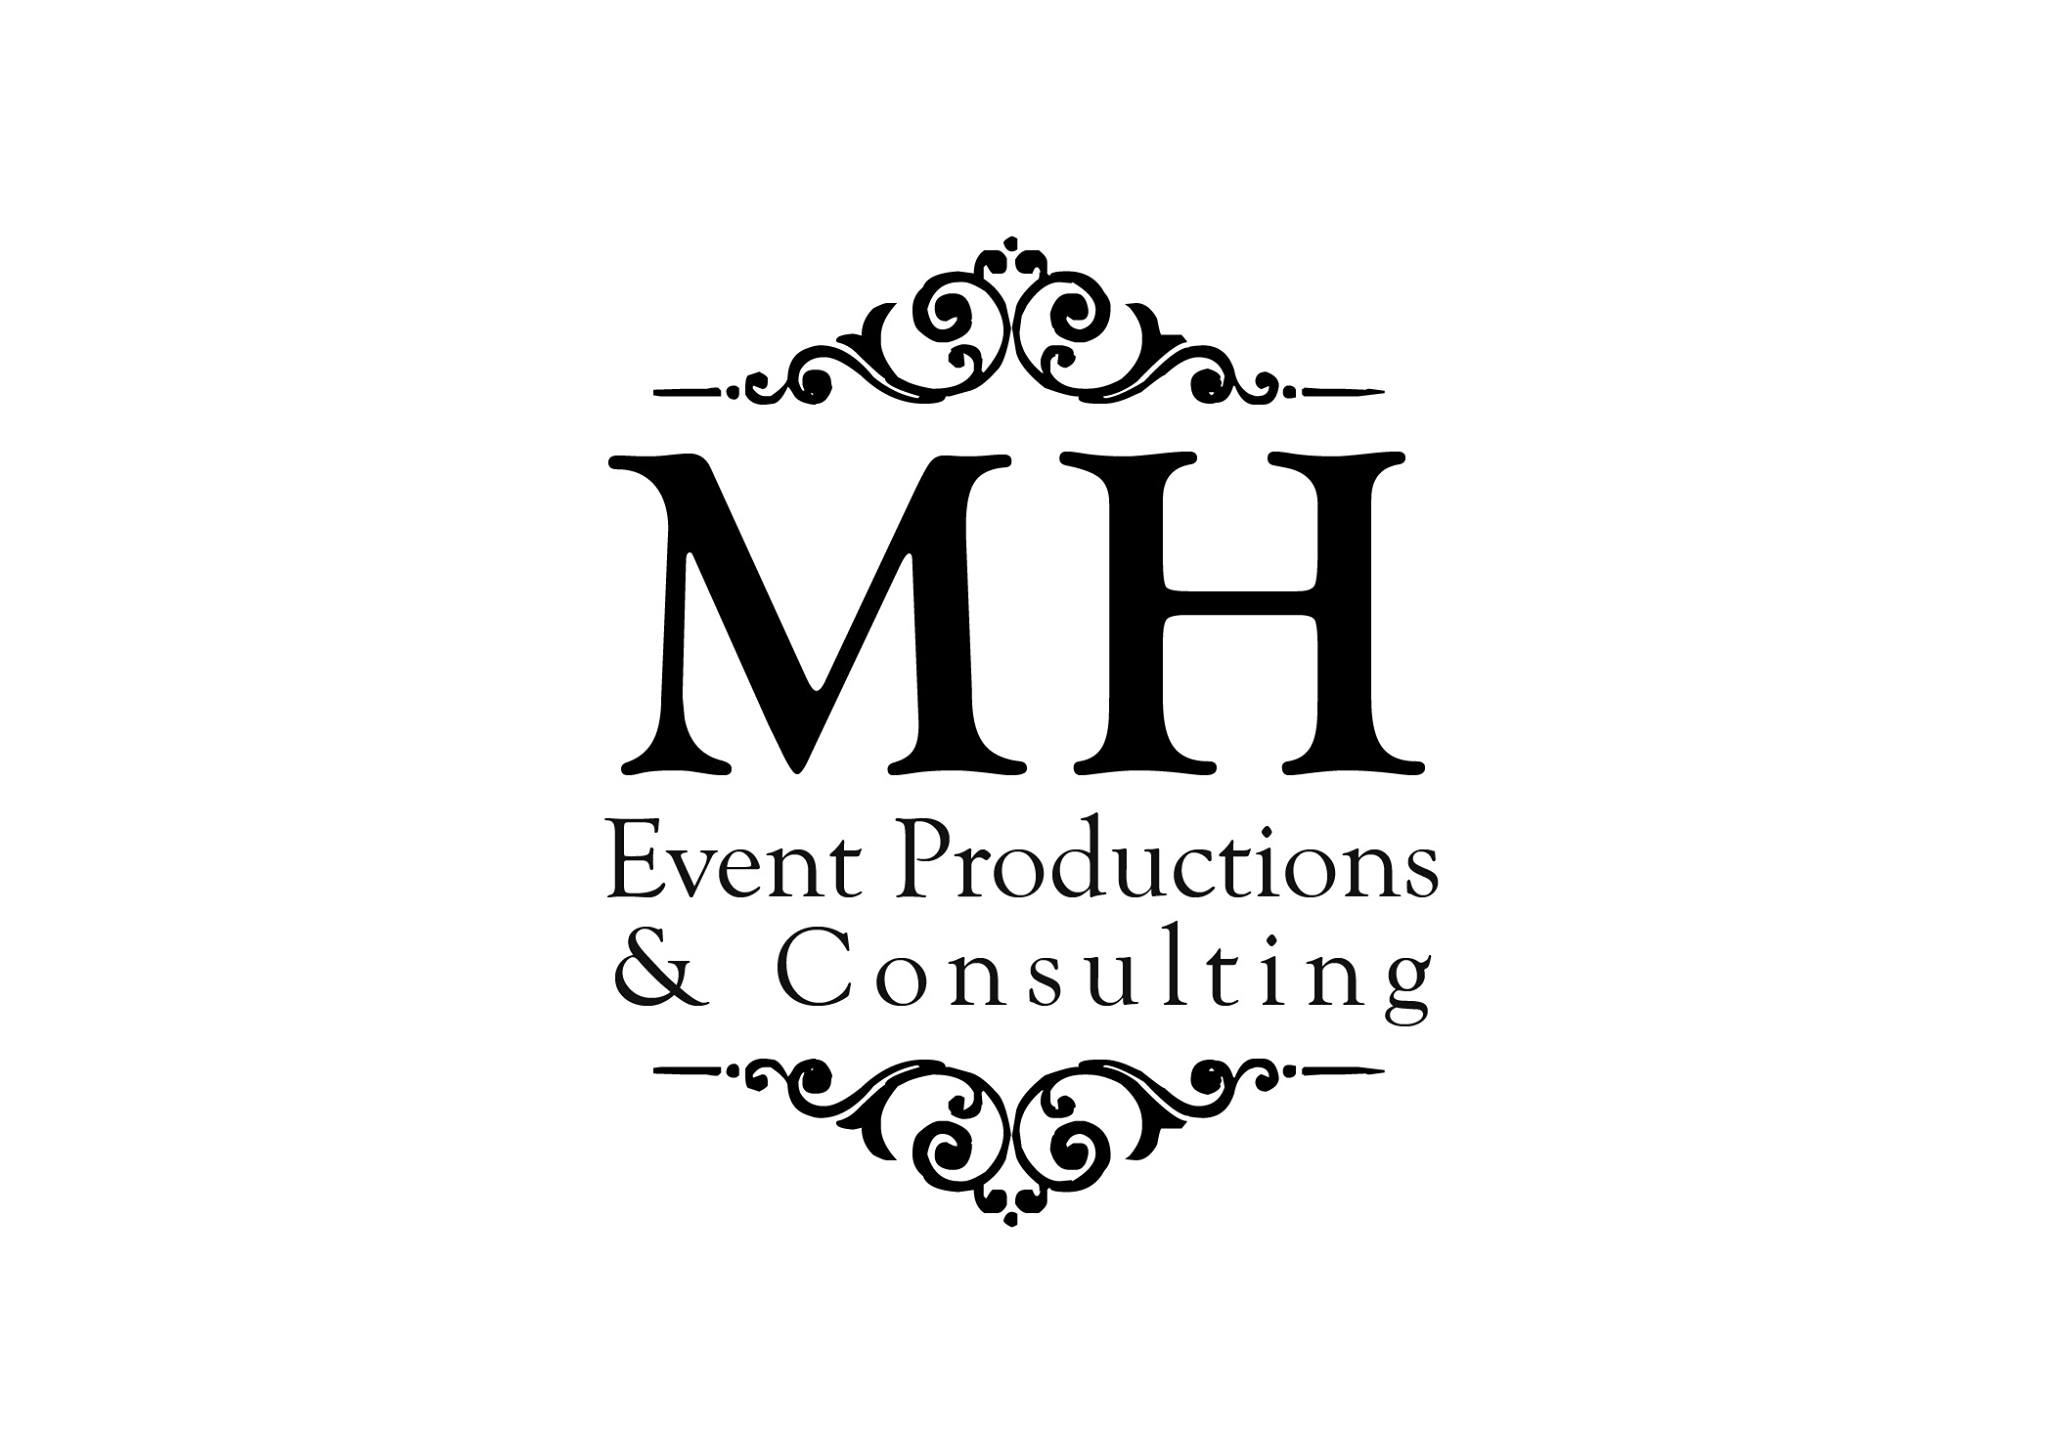 MH Event Productions - MH Event Productions & Consulting is an award winning, full service, event and wedding planning company with 15 years of experience based in the Twin Cities. We specialize and work with any event type such as lifestyle, social, creative as well as community-based. We pride ourselves in being versatile, unique, going above and beyond for our clients and most of all, being creative!